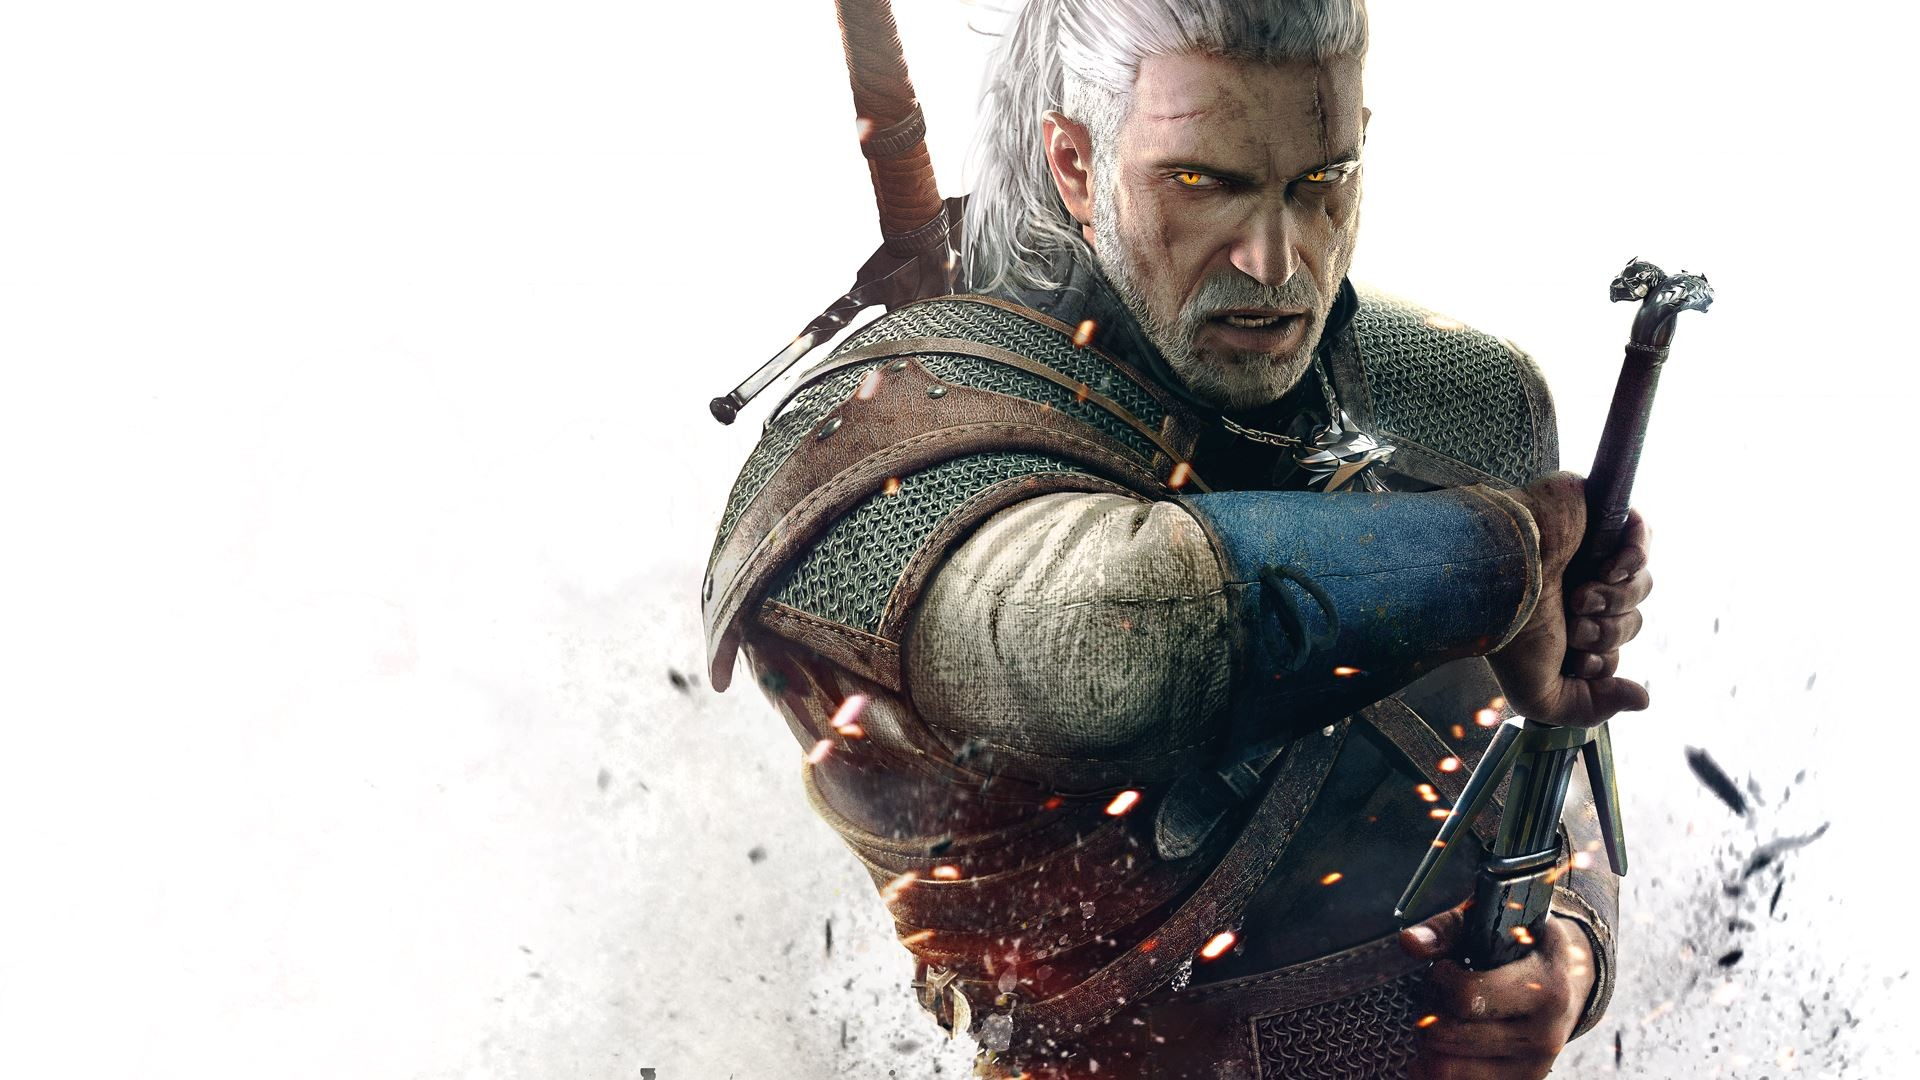 The Witcher 3: Wild Hunt – Comparison Reveals Decreased Particle Effects